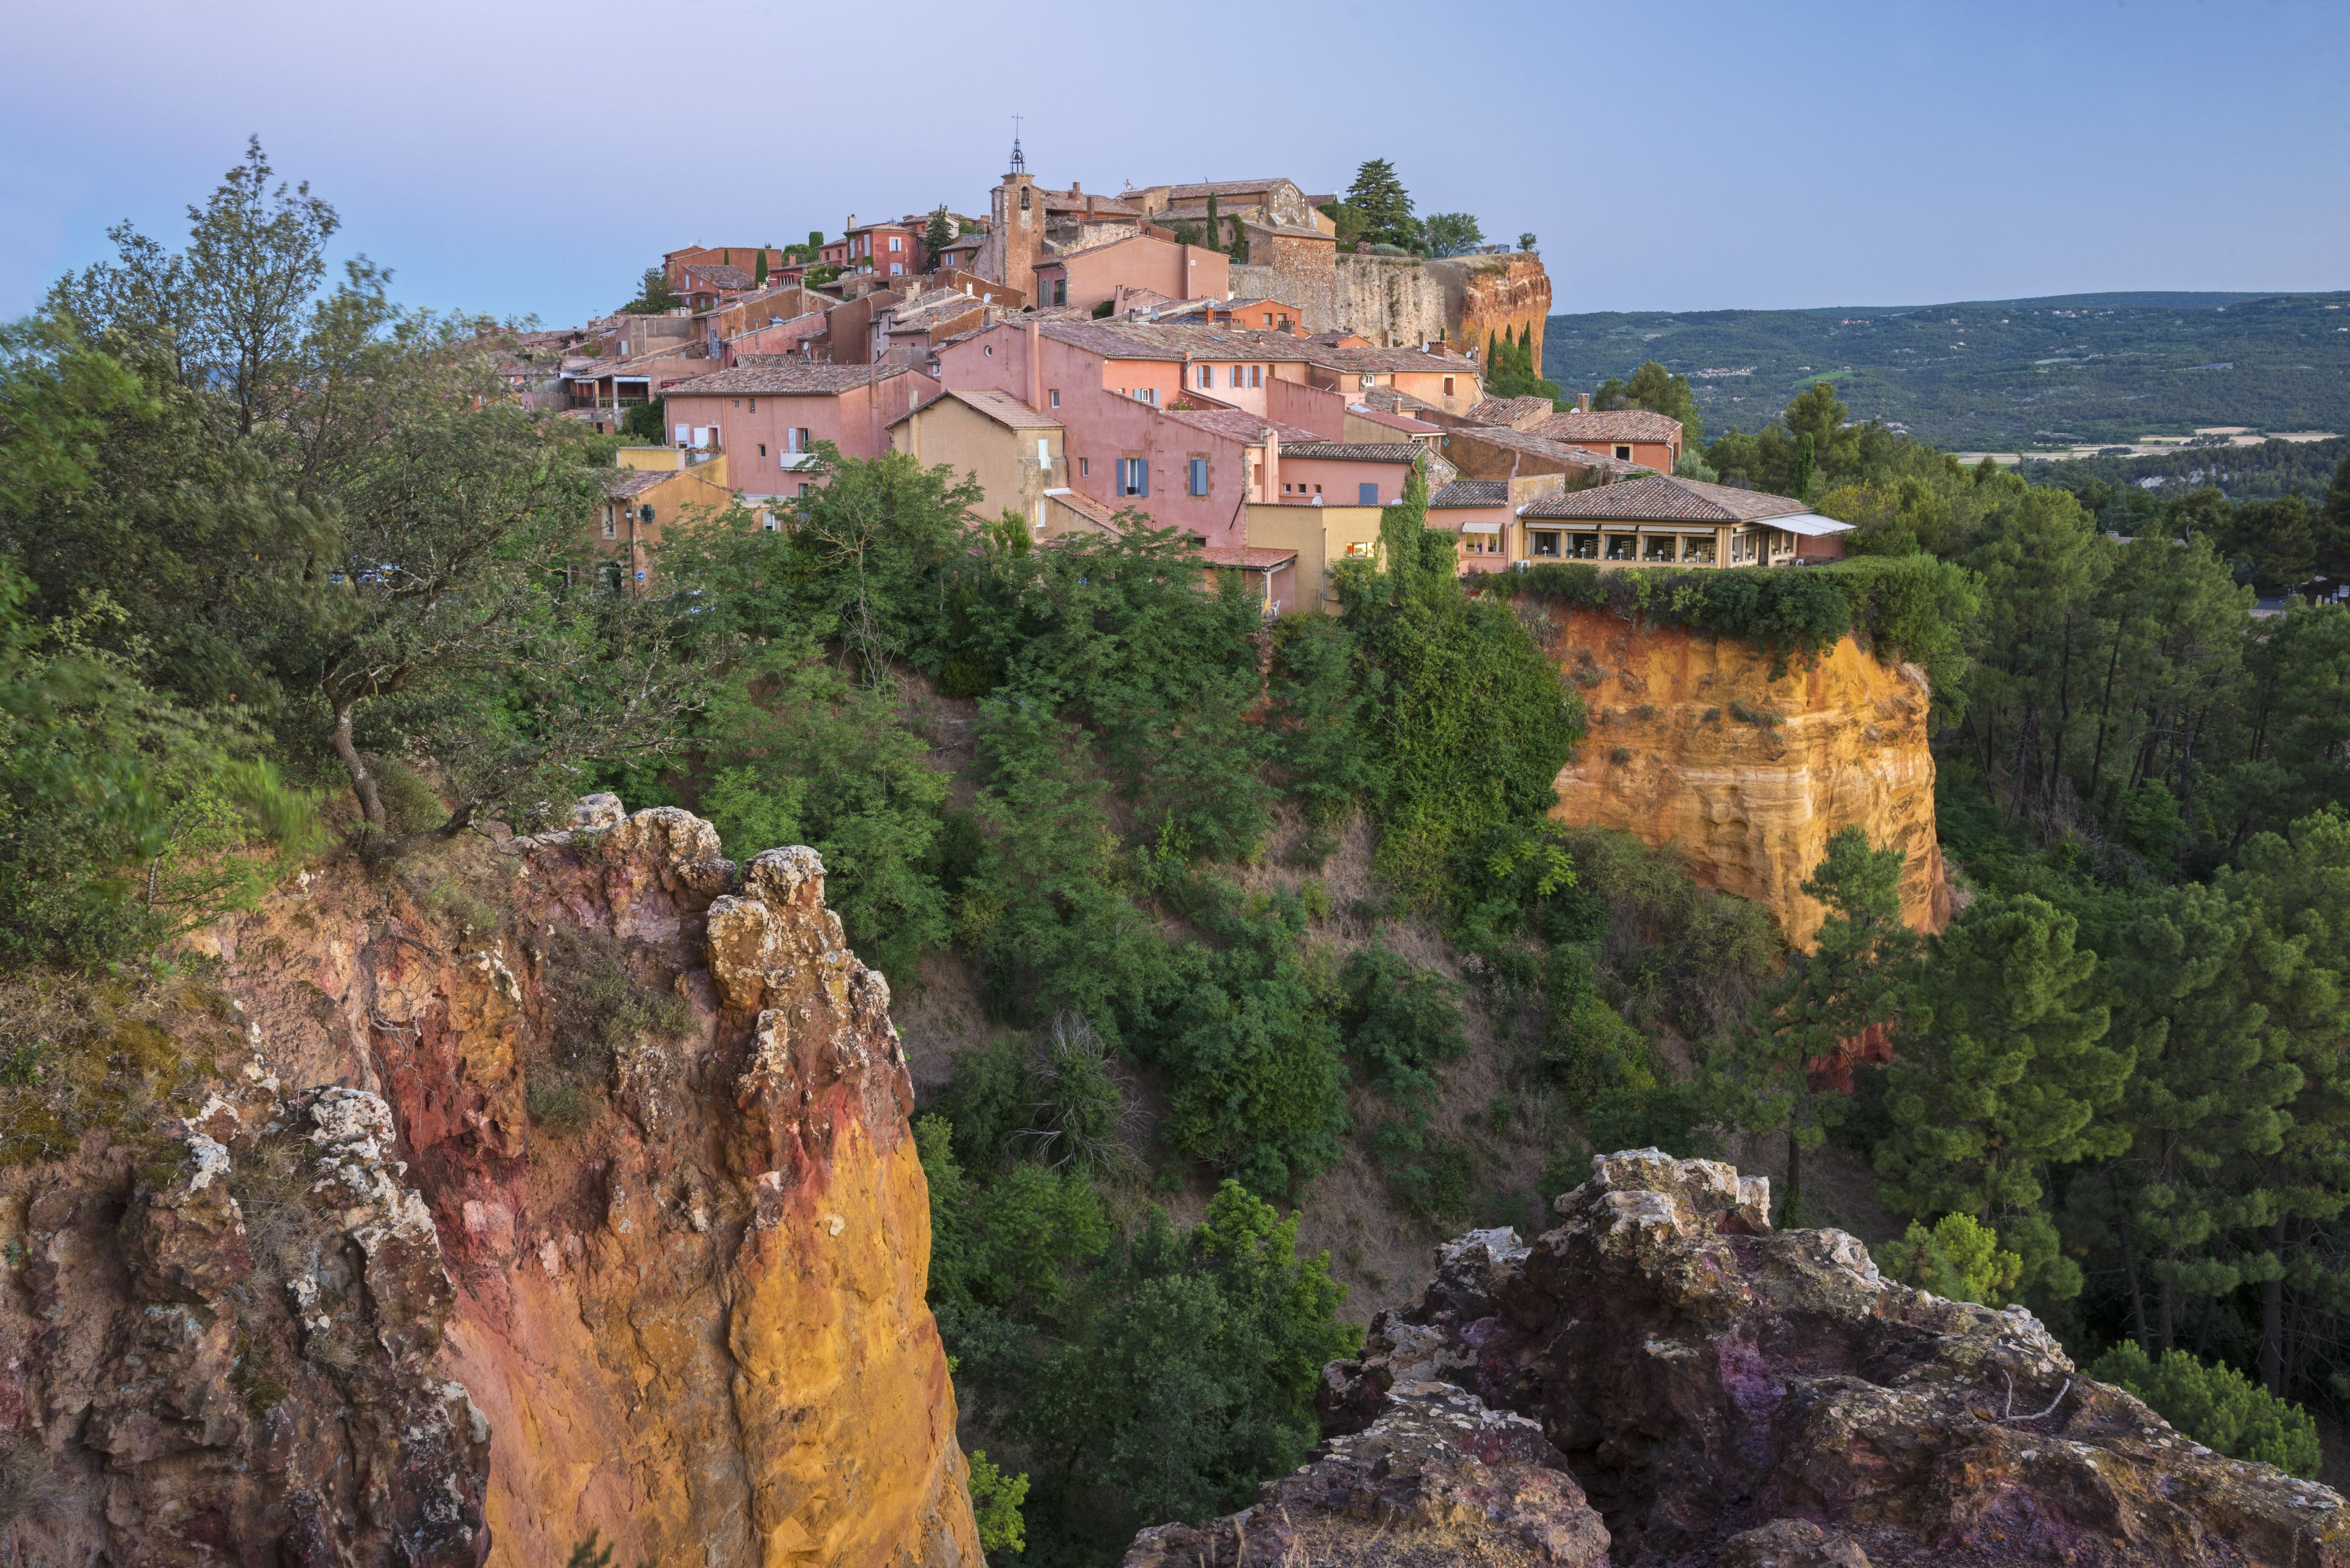 France, Provence, Vaucluse, Roussillon, View of village